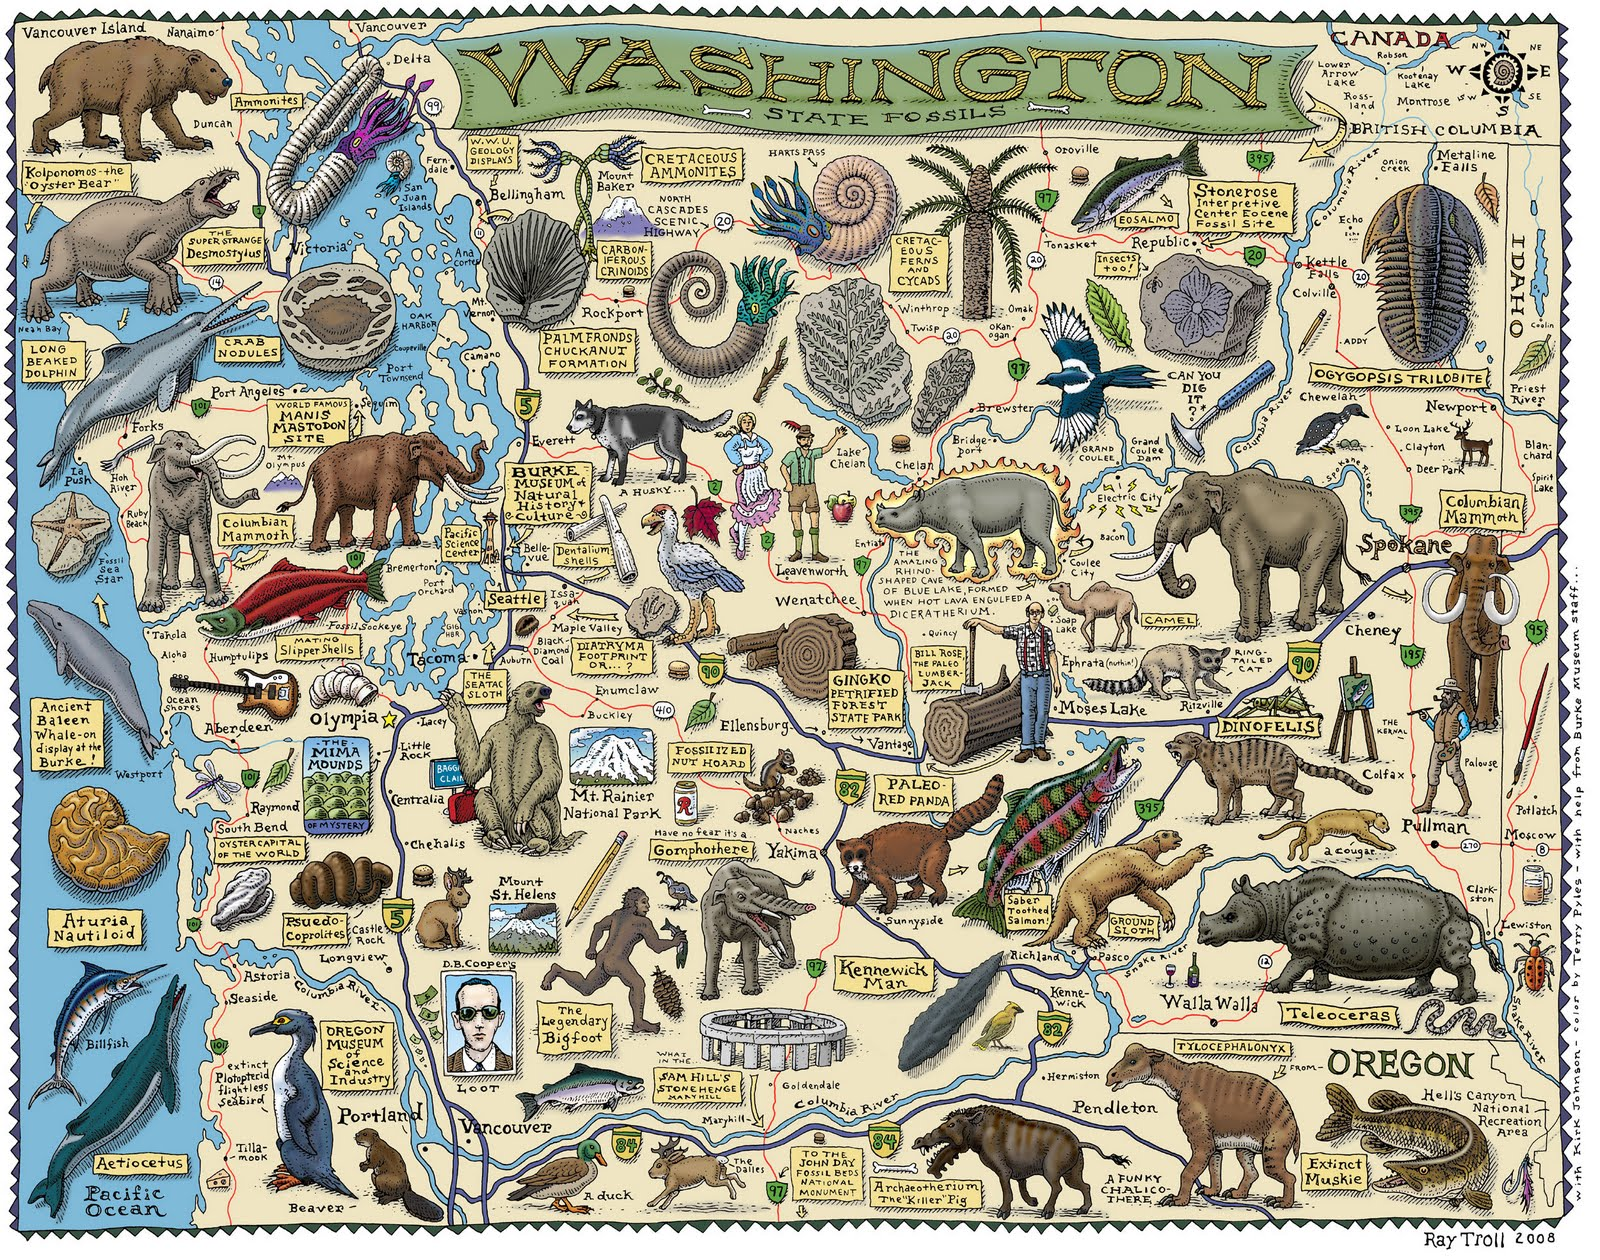 THE BIRDBOOKER REPORT  Washington State Fossils Map I just came across this poster  Washington State Fossils Map  by Ray Troll   It is available from the UW Burke Museum  UW Bookstore  Metsker Maps in  Pike